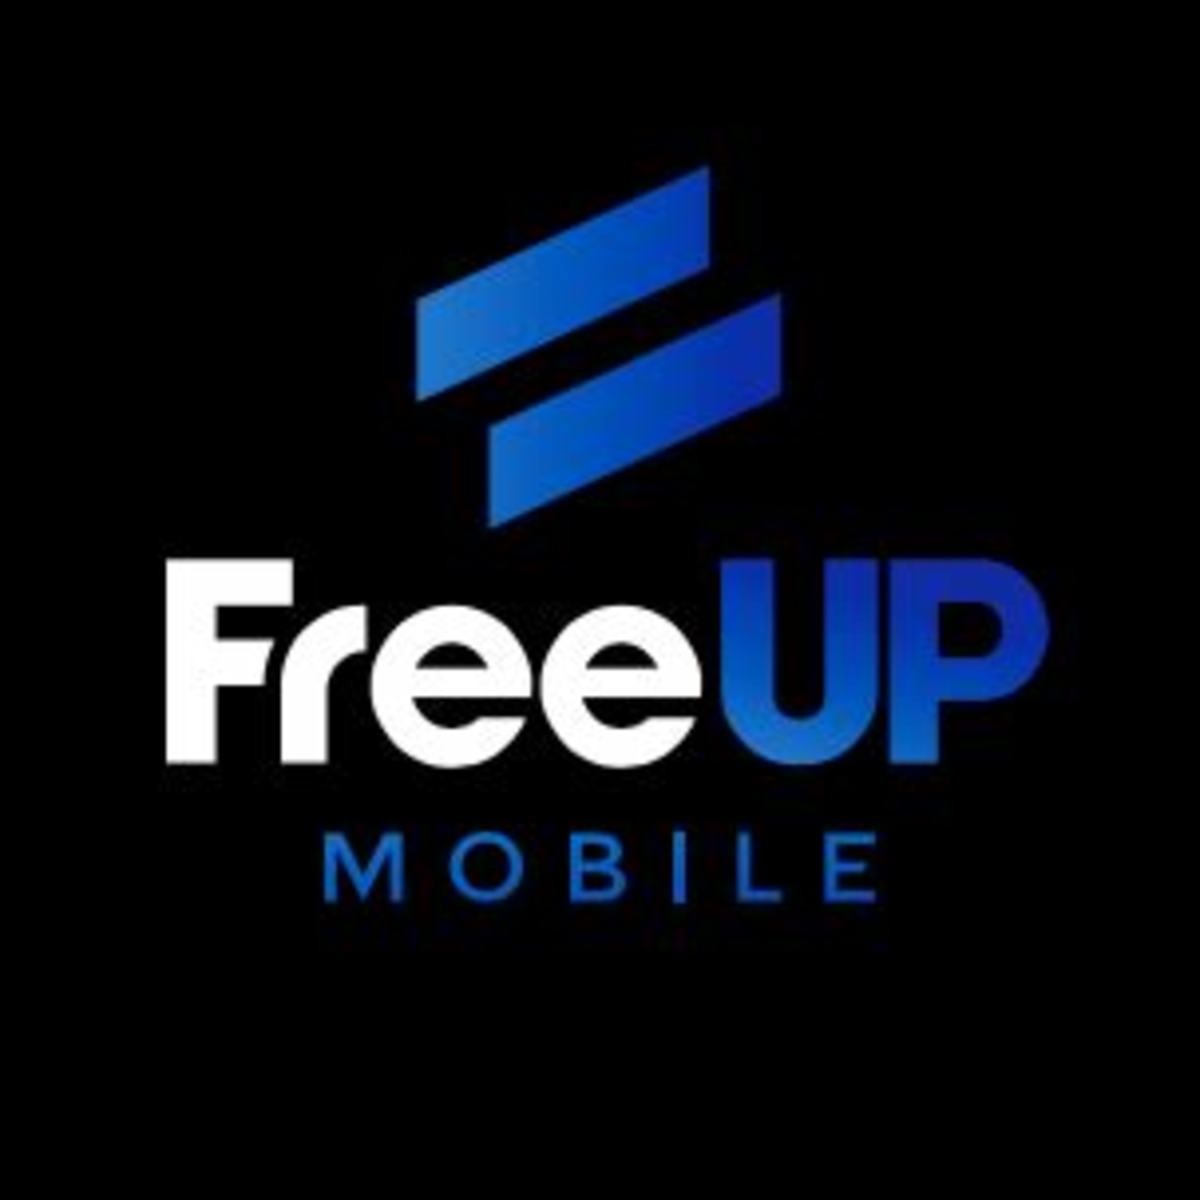 Freeup Mobile Cell Phone Service Full Review 2019 Free Your Phone From a Bill!